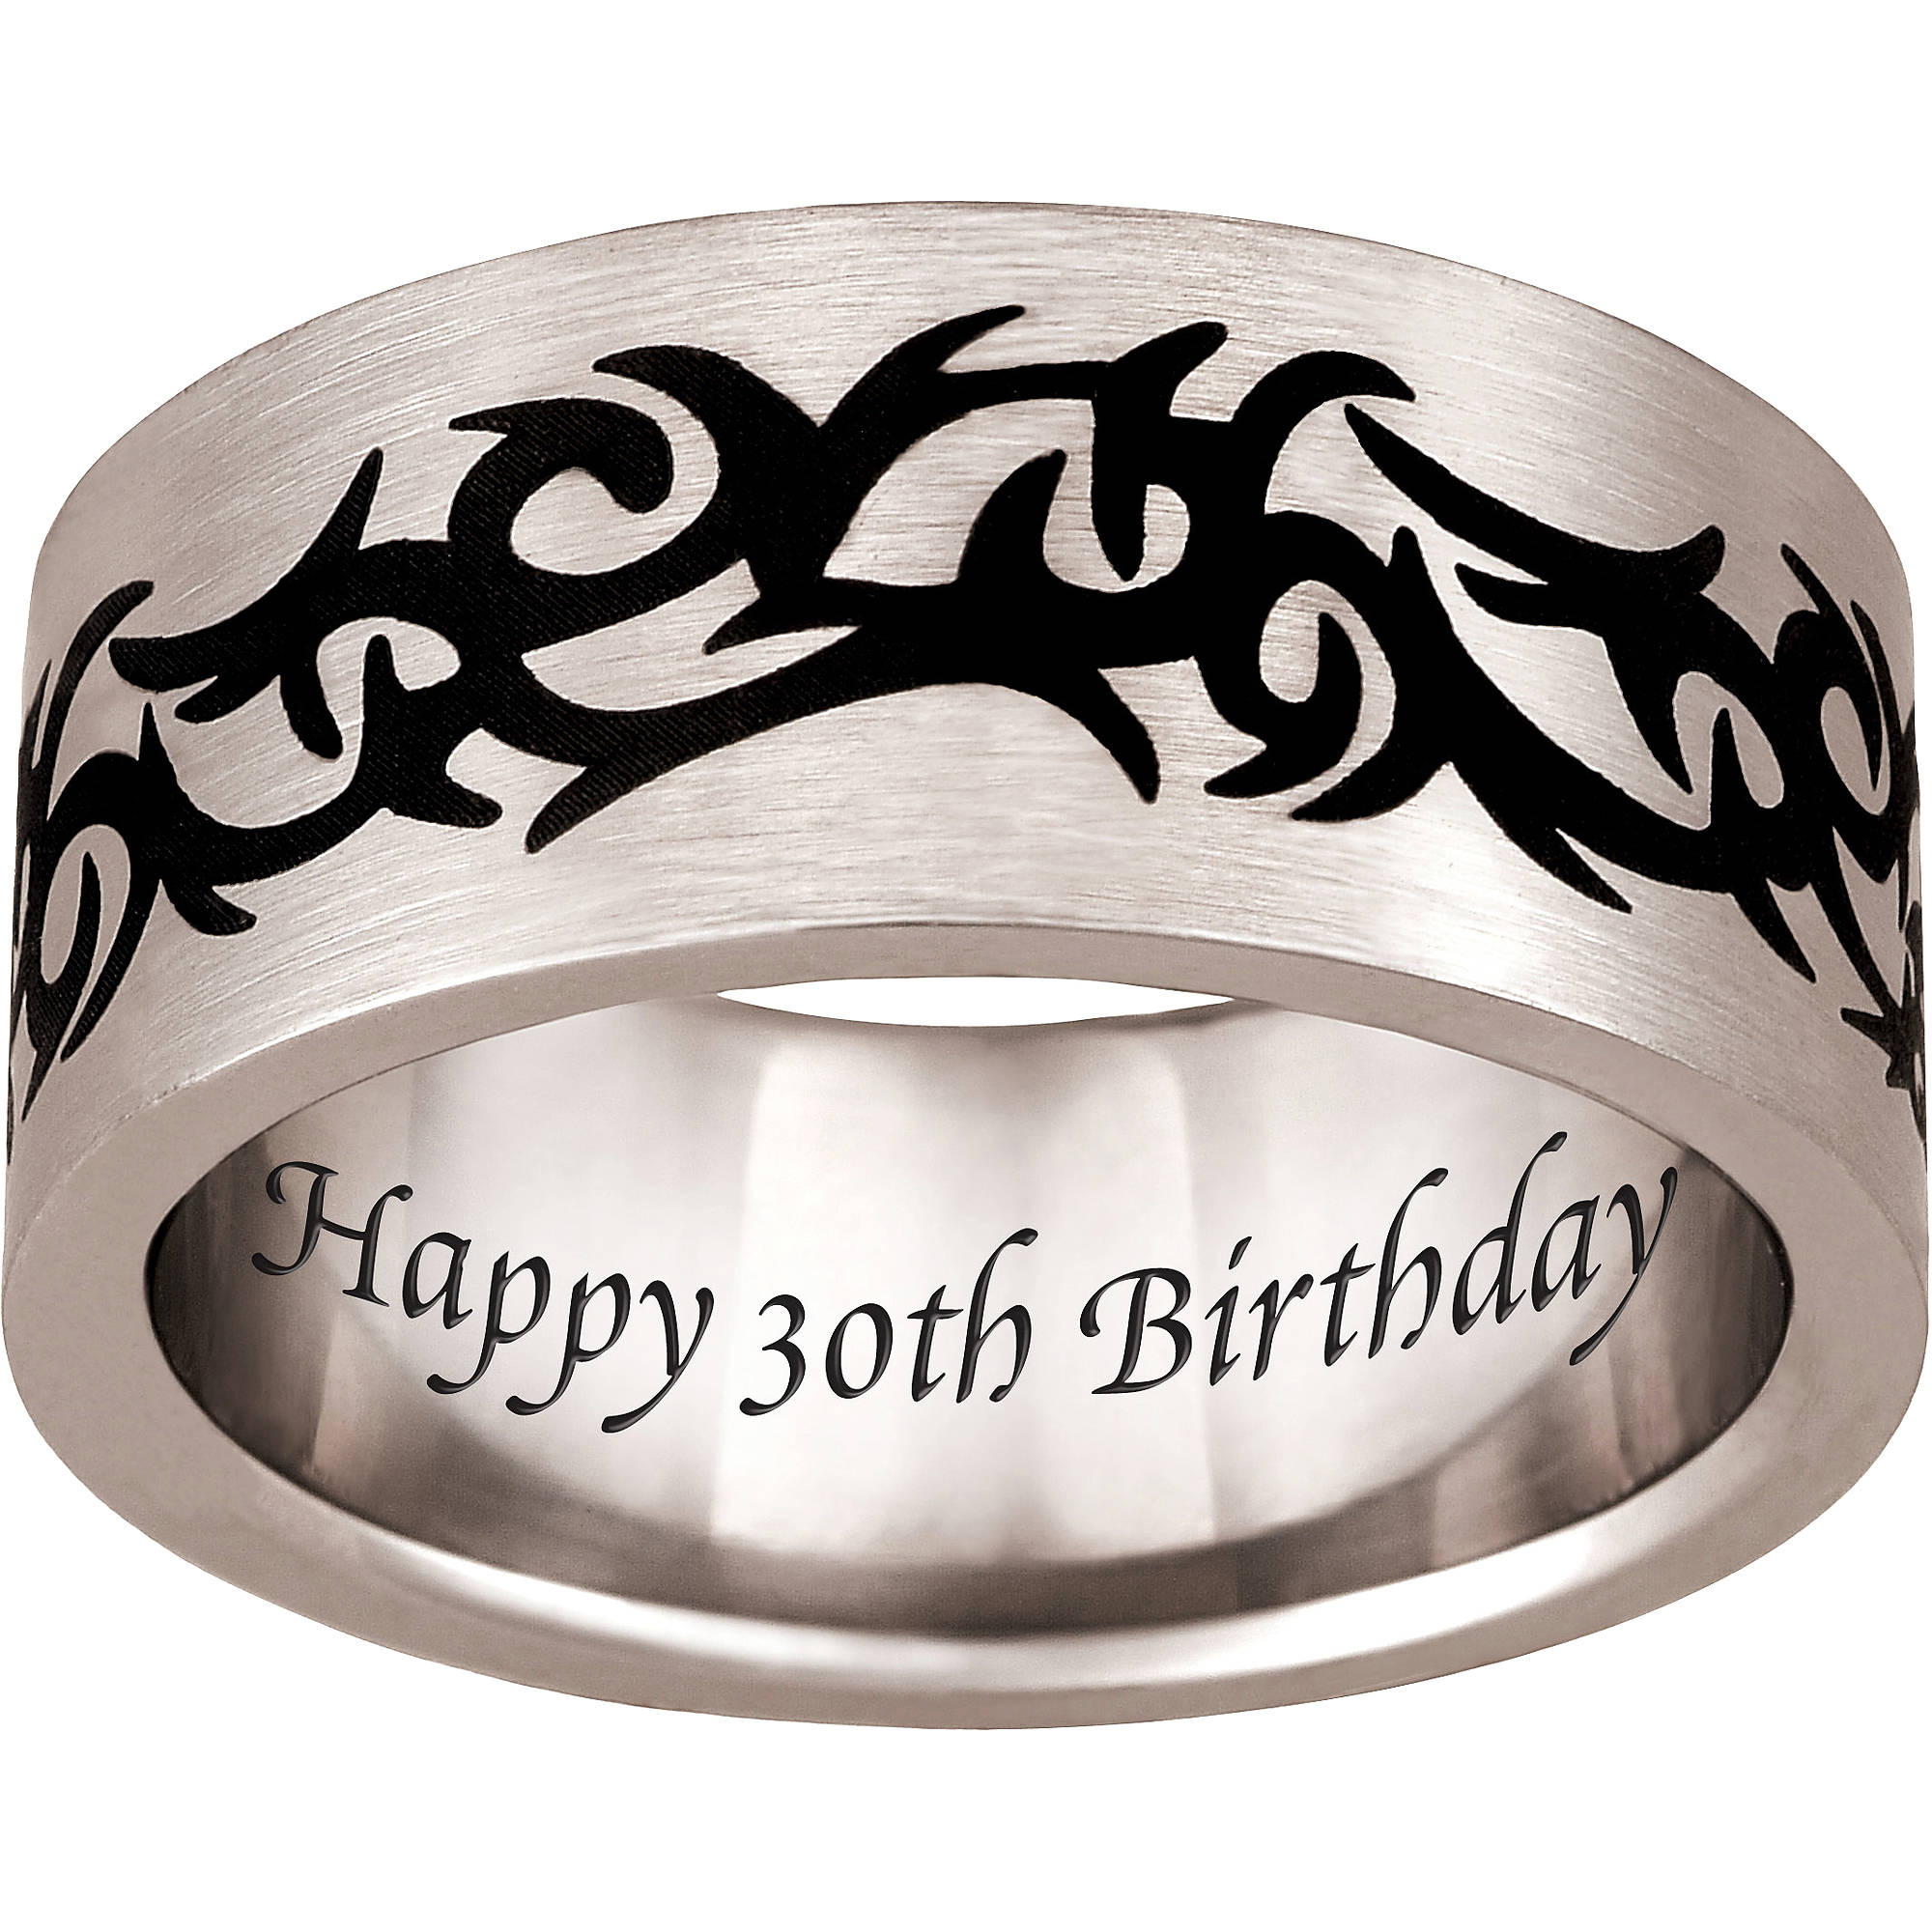 Personalized Keepsake Men's Ares Ring